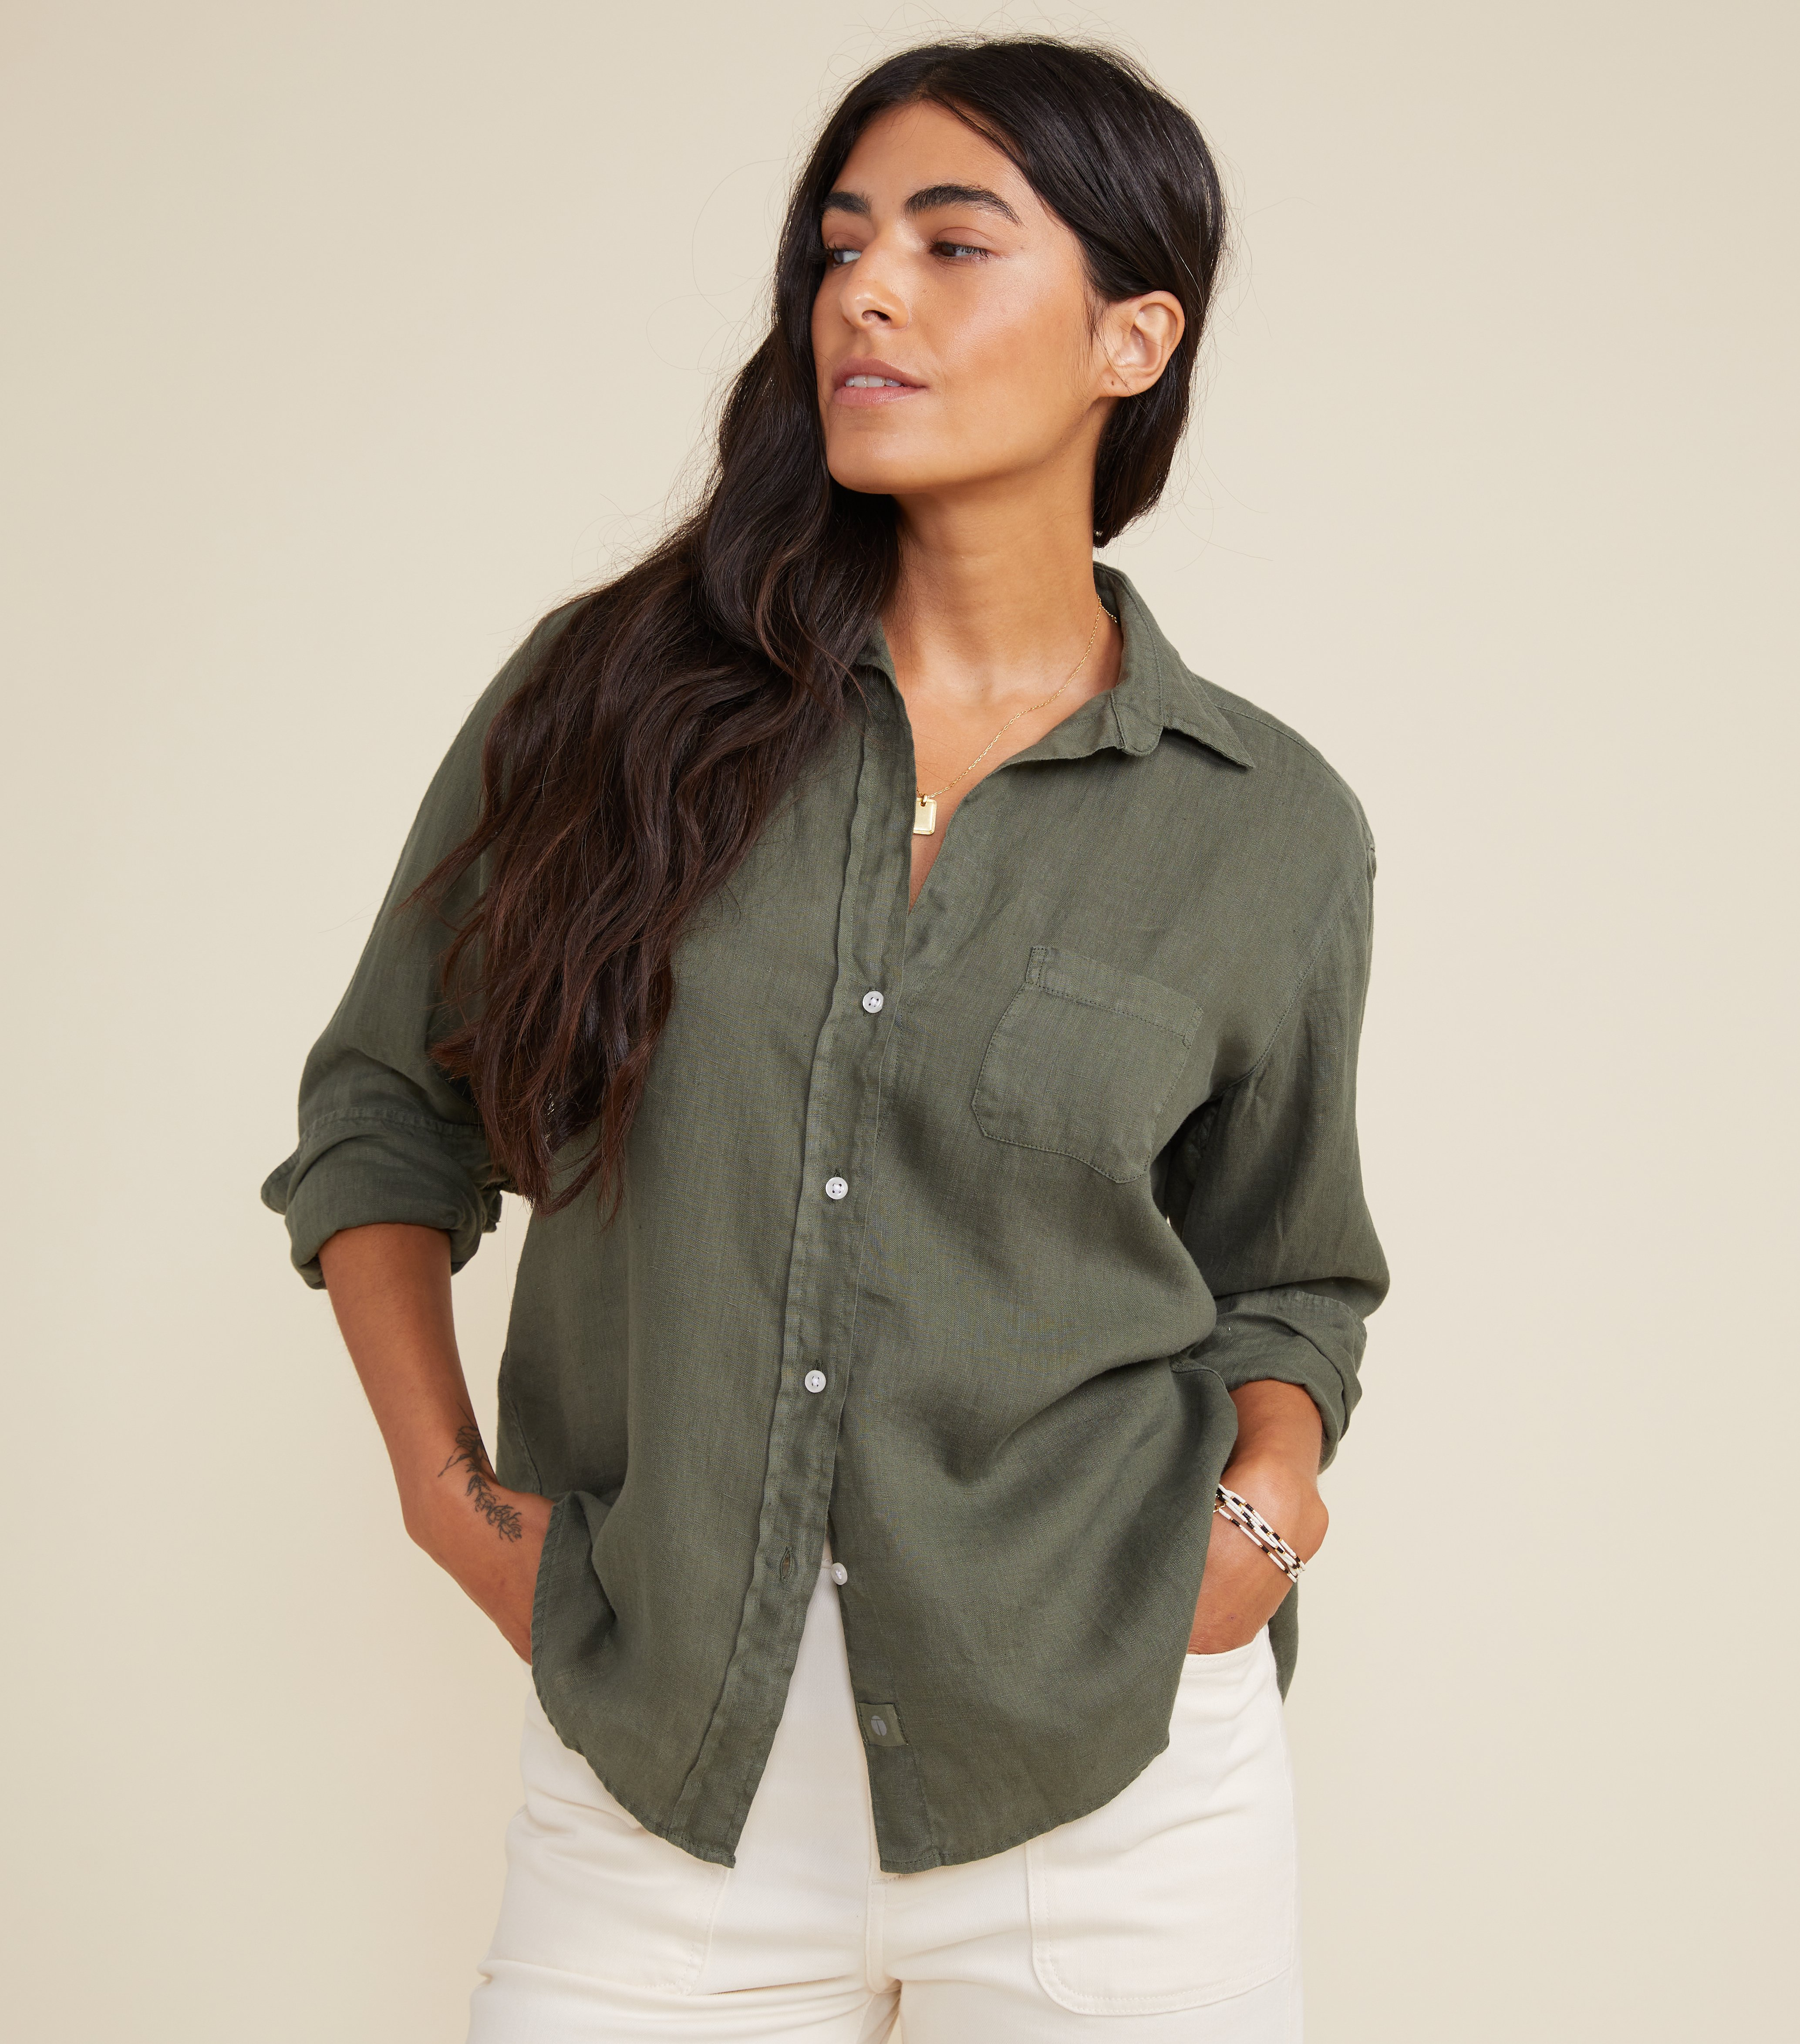 Image of The Hero Button-Up Shirt Army Green, Tumbled Linen